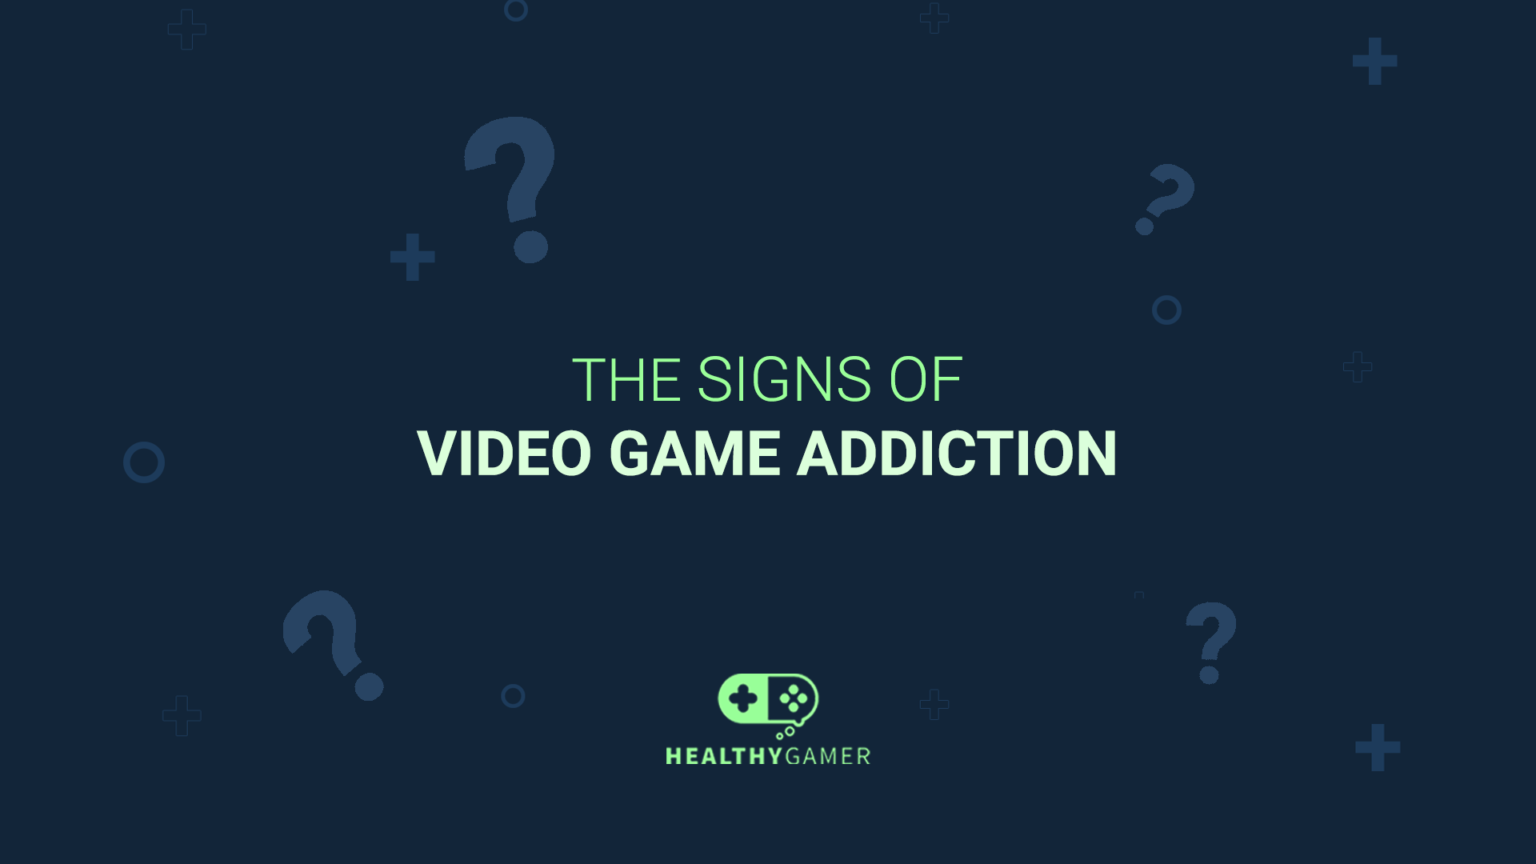 What are the Signs of Video Game Addiction?